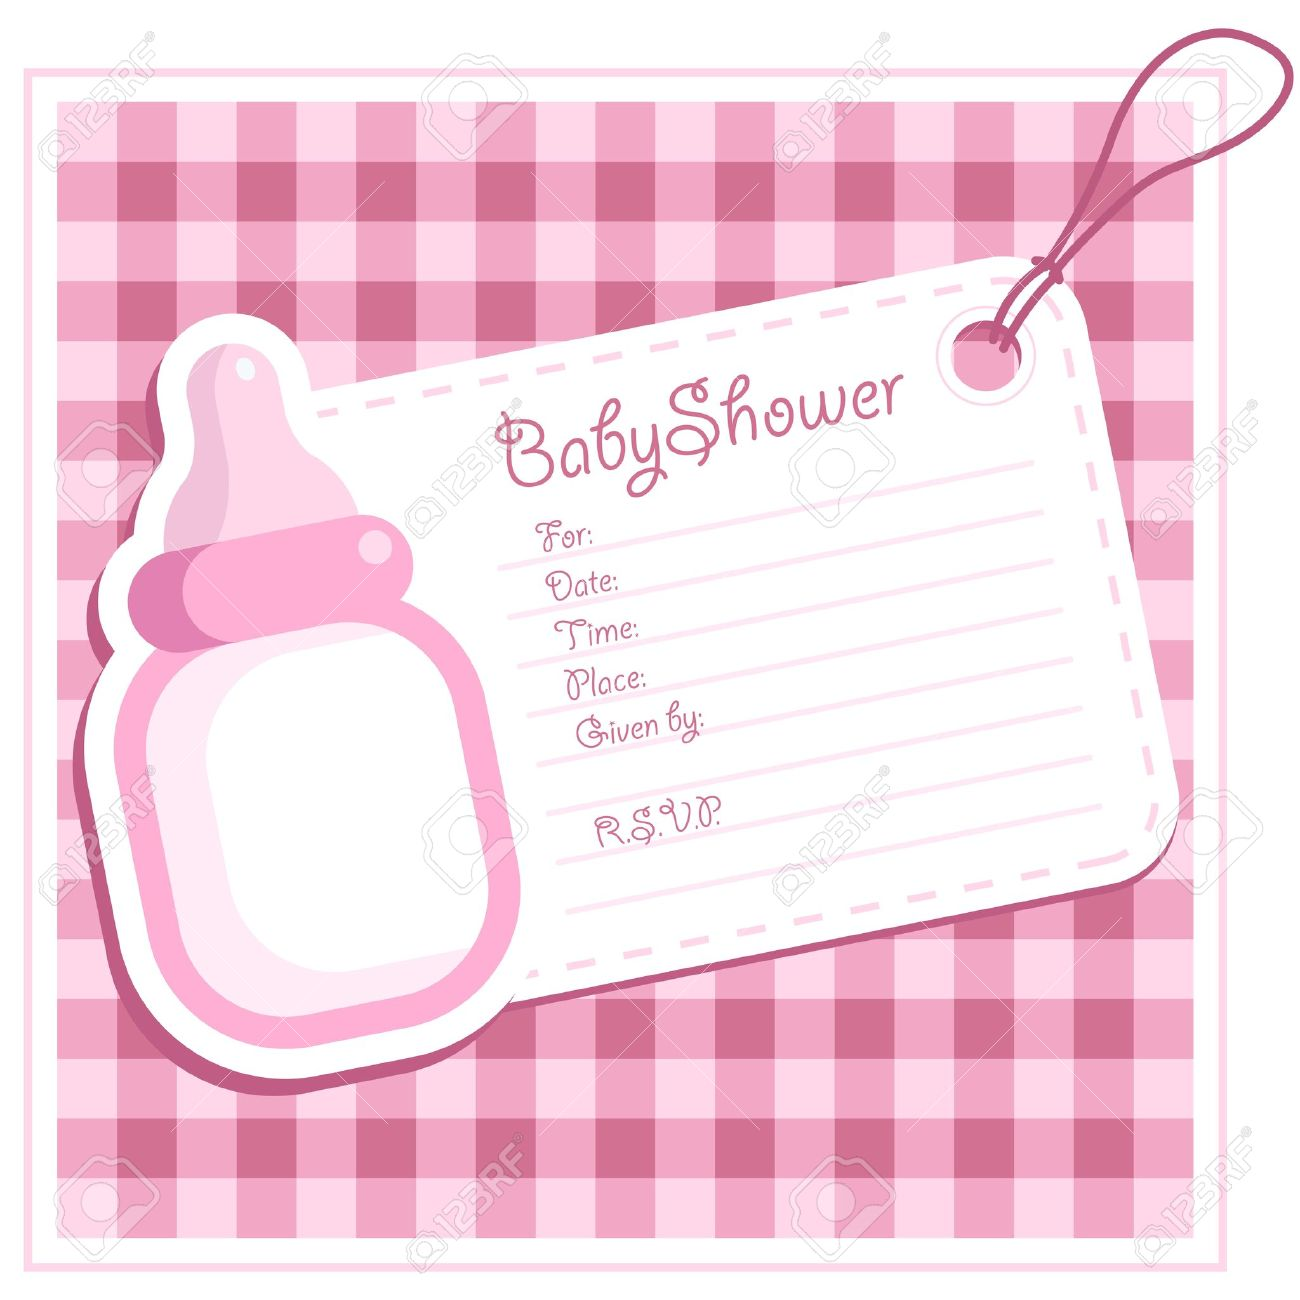 Baby Girl Shower Bottle Invitation Card Royalty Free Cliparts ...